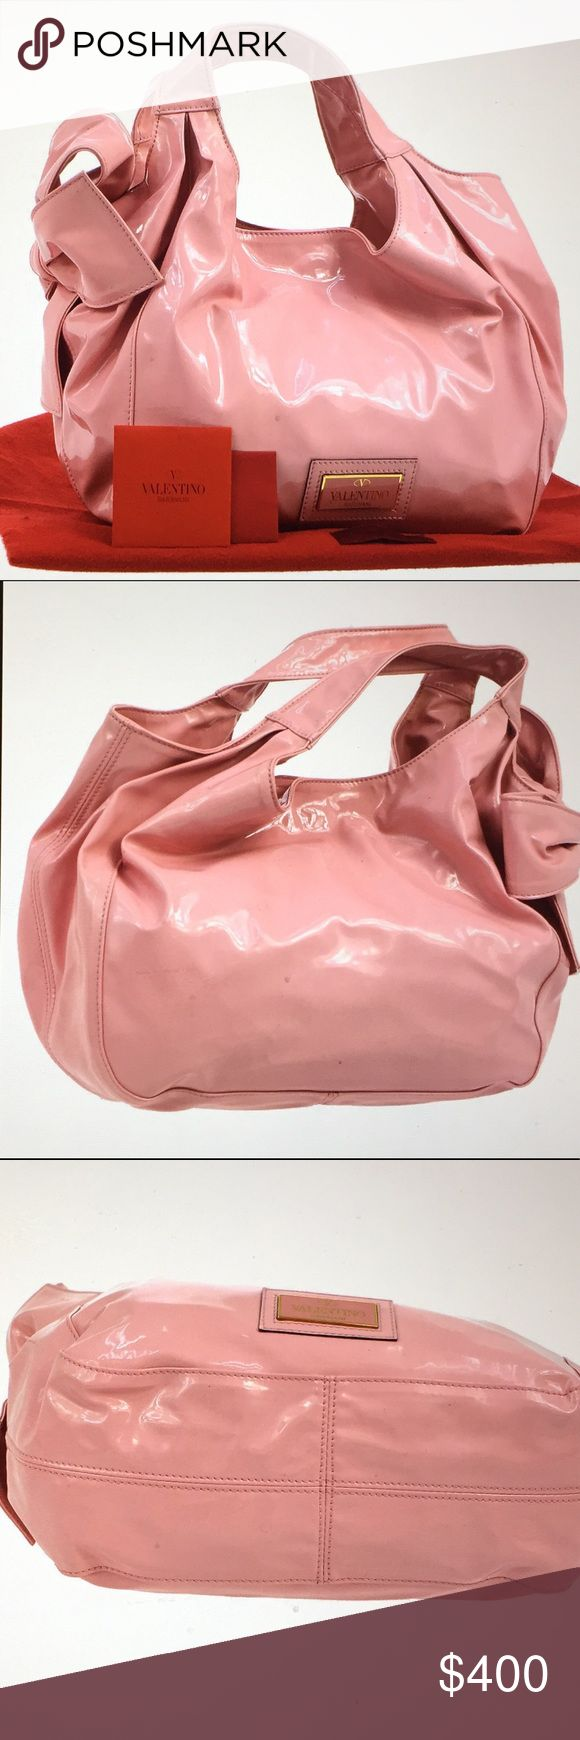 """🆕 Valentino Garavani """" Pure Haven"""" Pink Handbag Authentic VG Pink patter leather, Iconic bow details, zipper compartment, two pockets, gold hardware, in very good condition, dimensions: L 11.8 x H 9.4 approx. S# BG E 963LAA1 , comes with dust bag. Valentino Garavani Bags Shoulder Bags"""